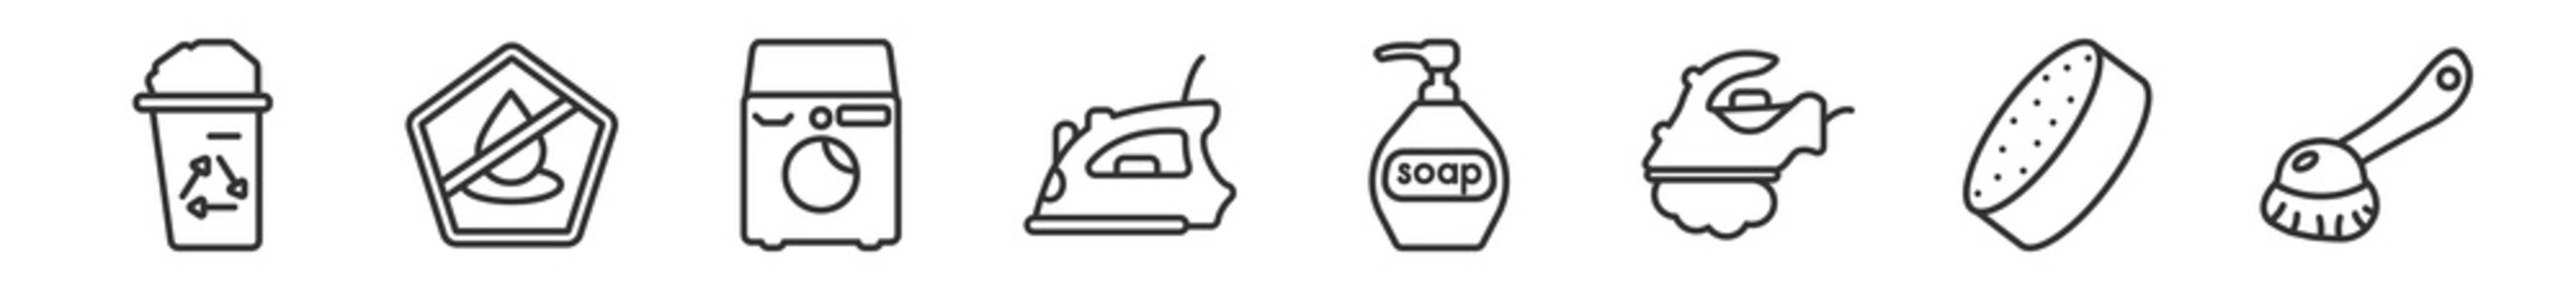 outline set of cleaning line icons. linear vector icons such as wiping trash, no water cleanin, washing machine, iron, soap cleanin, brush. vector illustration.